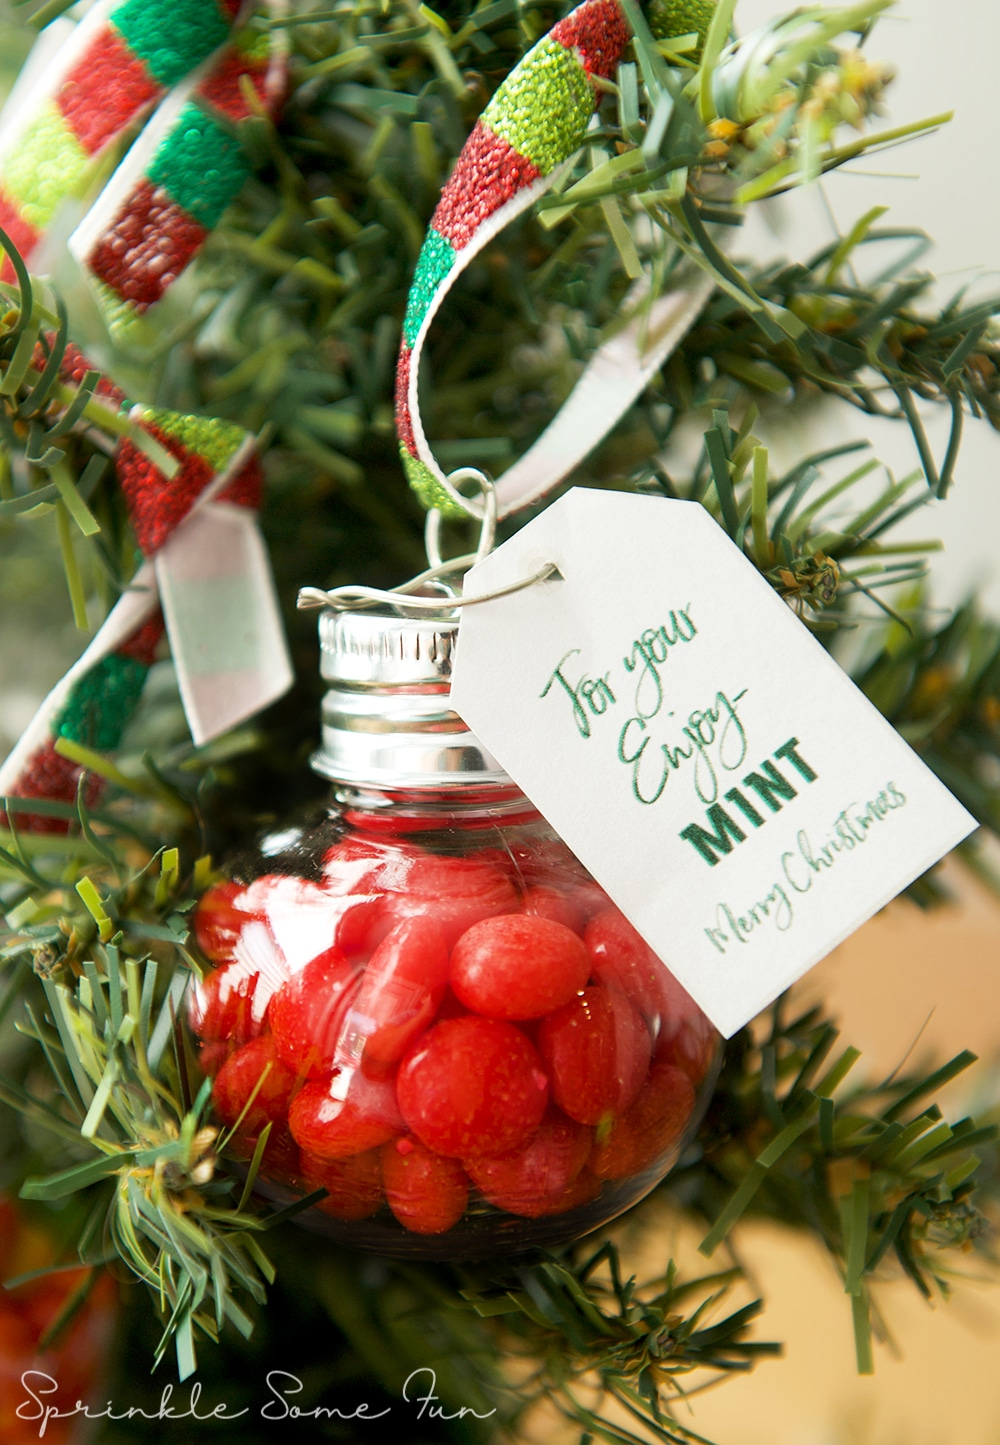 Red Hot Filled Ornament on a Christmas Tree. These Mint Filled Ornaments are a simple holiday gift idea you can give to everyone!